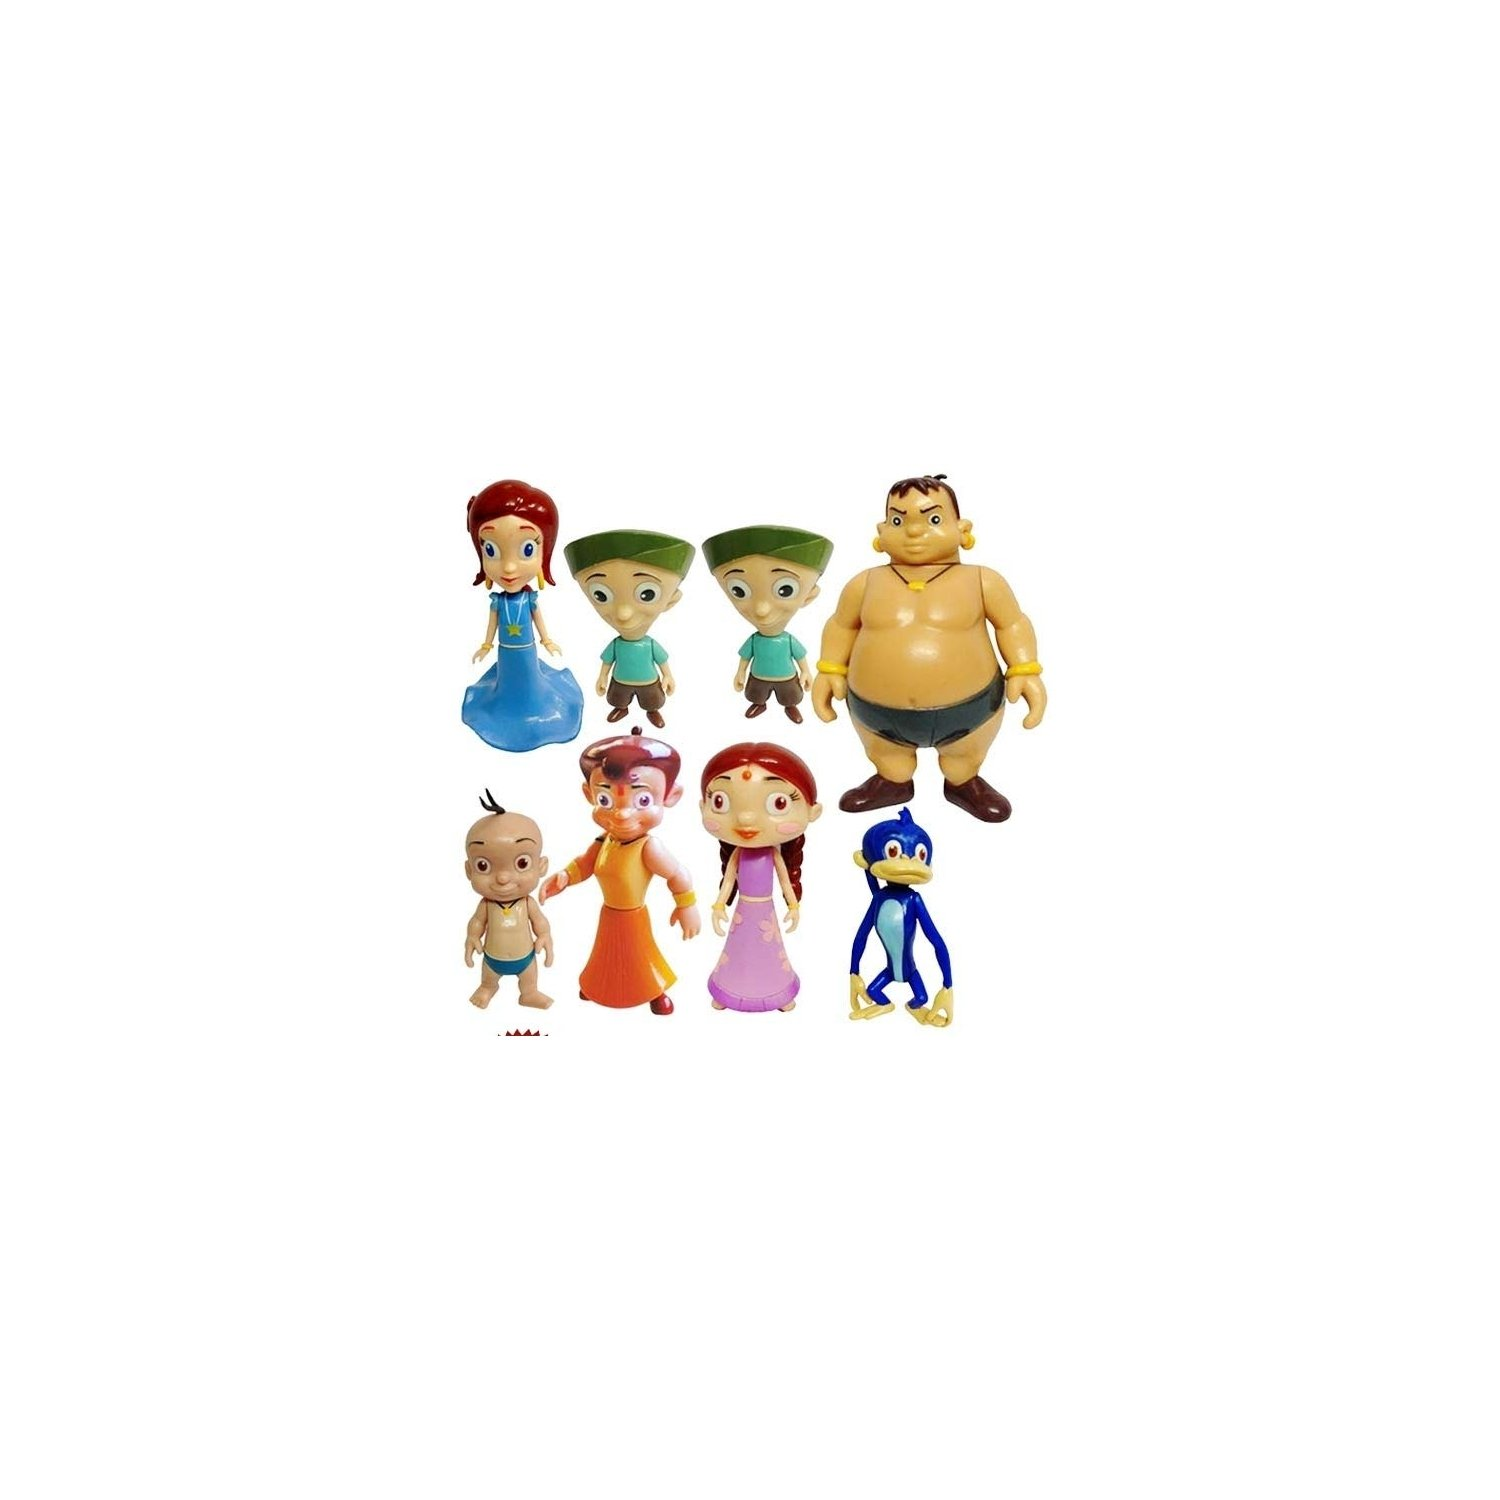 Chhota Bheem-8-in-1 Action Figure product image